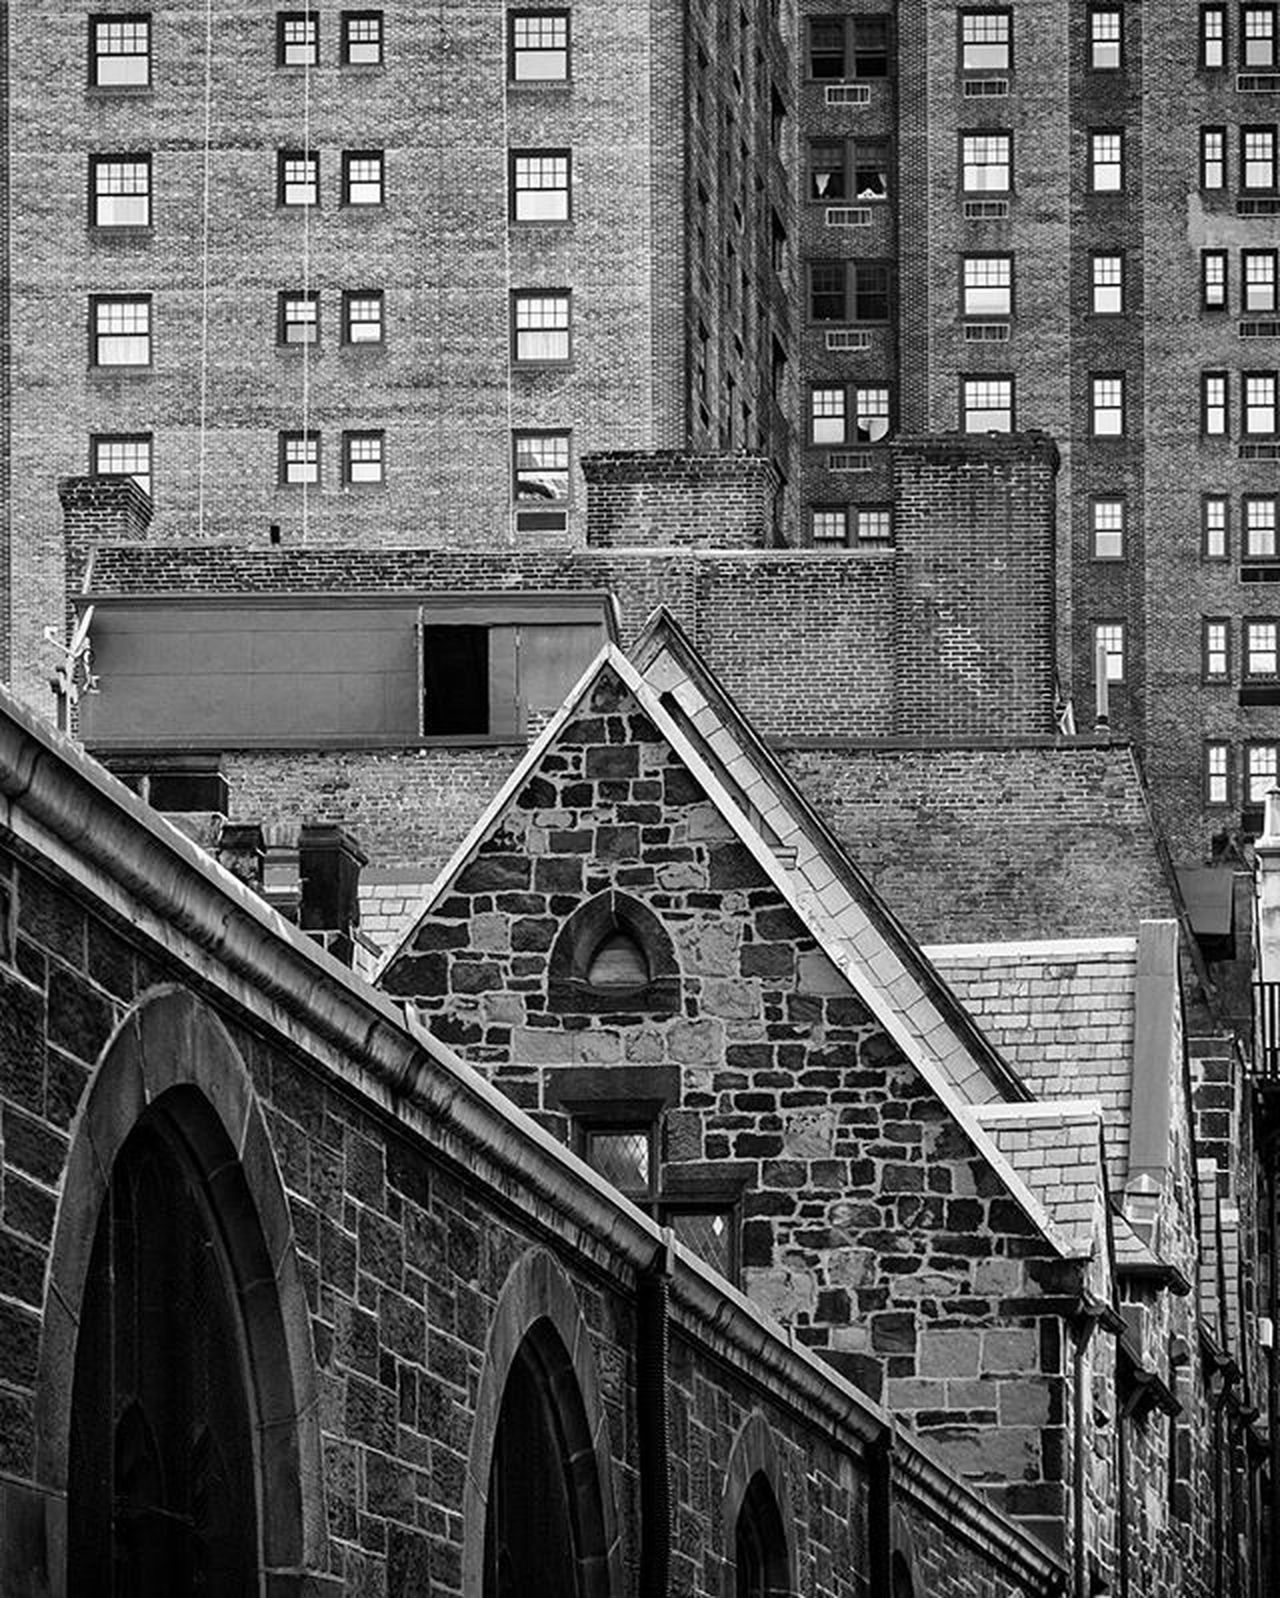 Closed Windows, Open Door Architecture Art_chitecture_ Phillyarchitecture Philadelphia Philly Igers_philly Igers_philly_street Savephilly Whyilovephilly Citylife Howphillyseesphilly Blackandwhite Bnw_life Bnw_planet Bnw_universe Bnw_society Bnw_captures Bnw_city Bnw_magazine Bnw Bw Rustlord_archdesign Rustlord_bnw Rsa_architecture Rsa_bnw ig_contrast_bnw